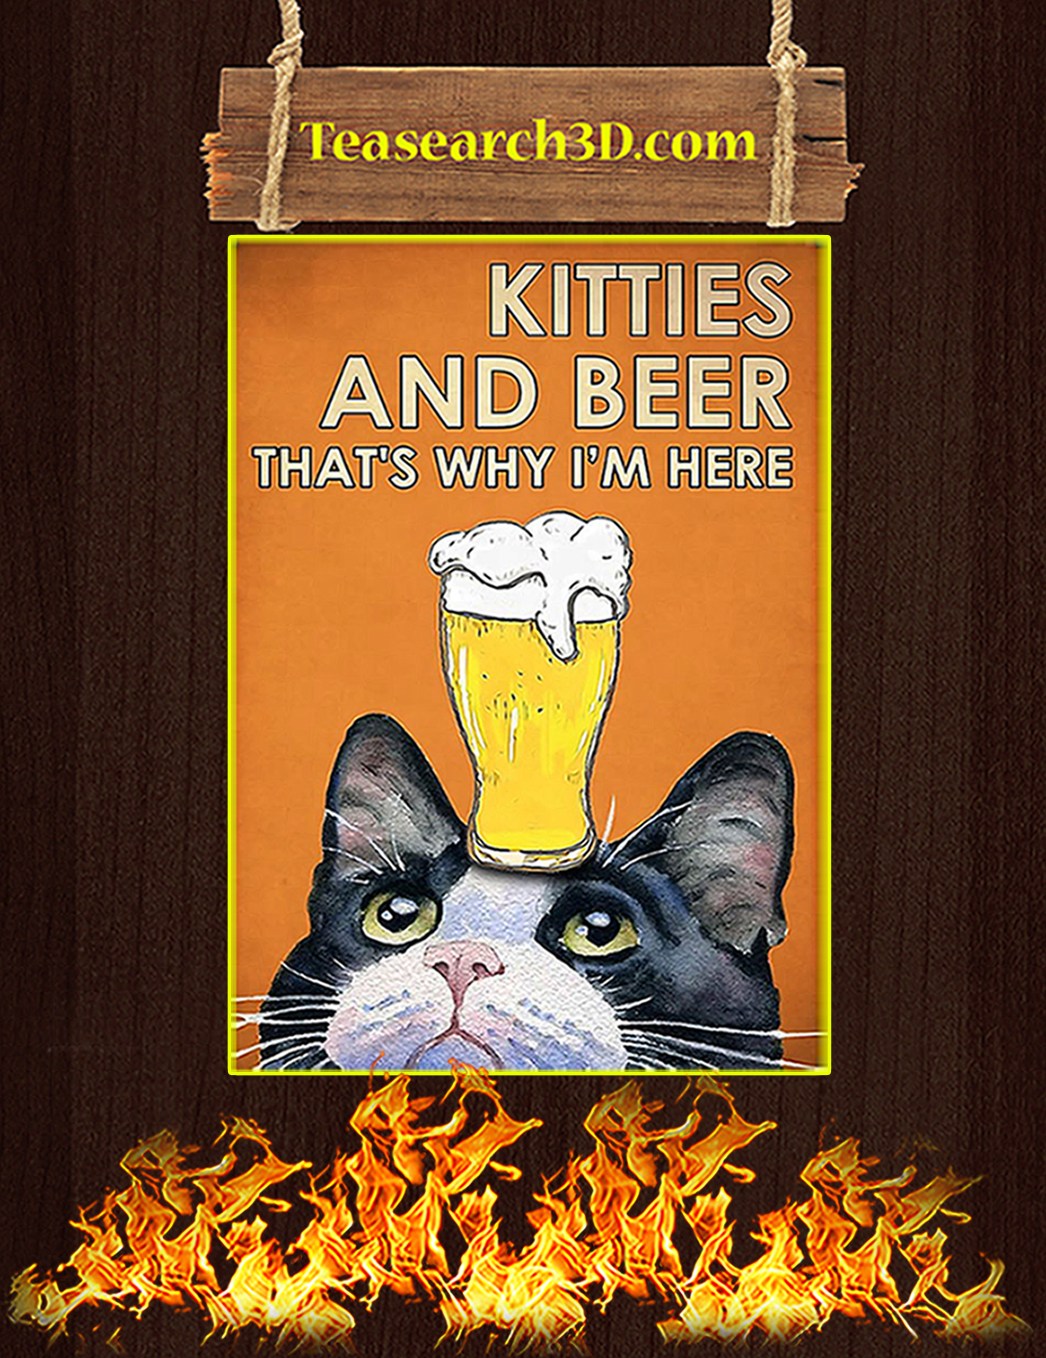 Kitties and beer that's why I'm here poster A1